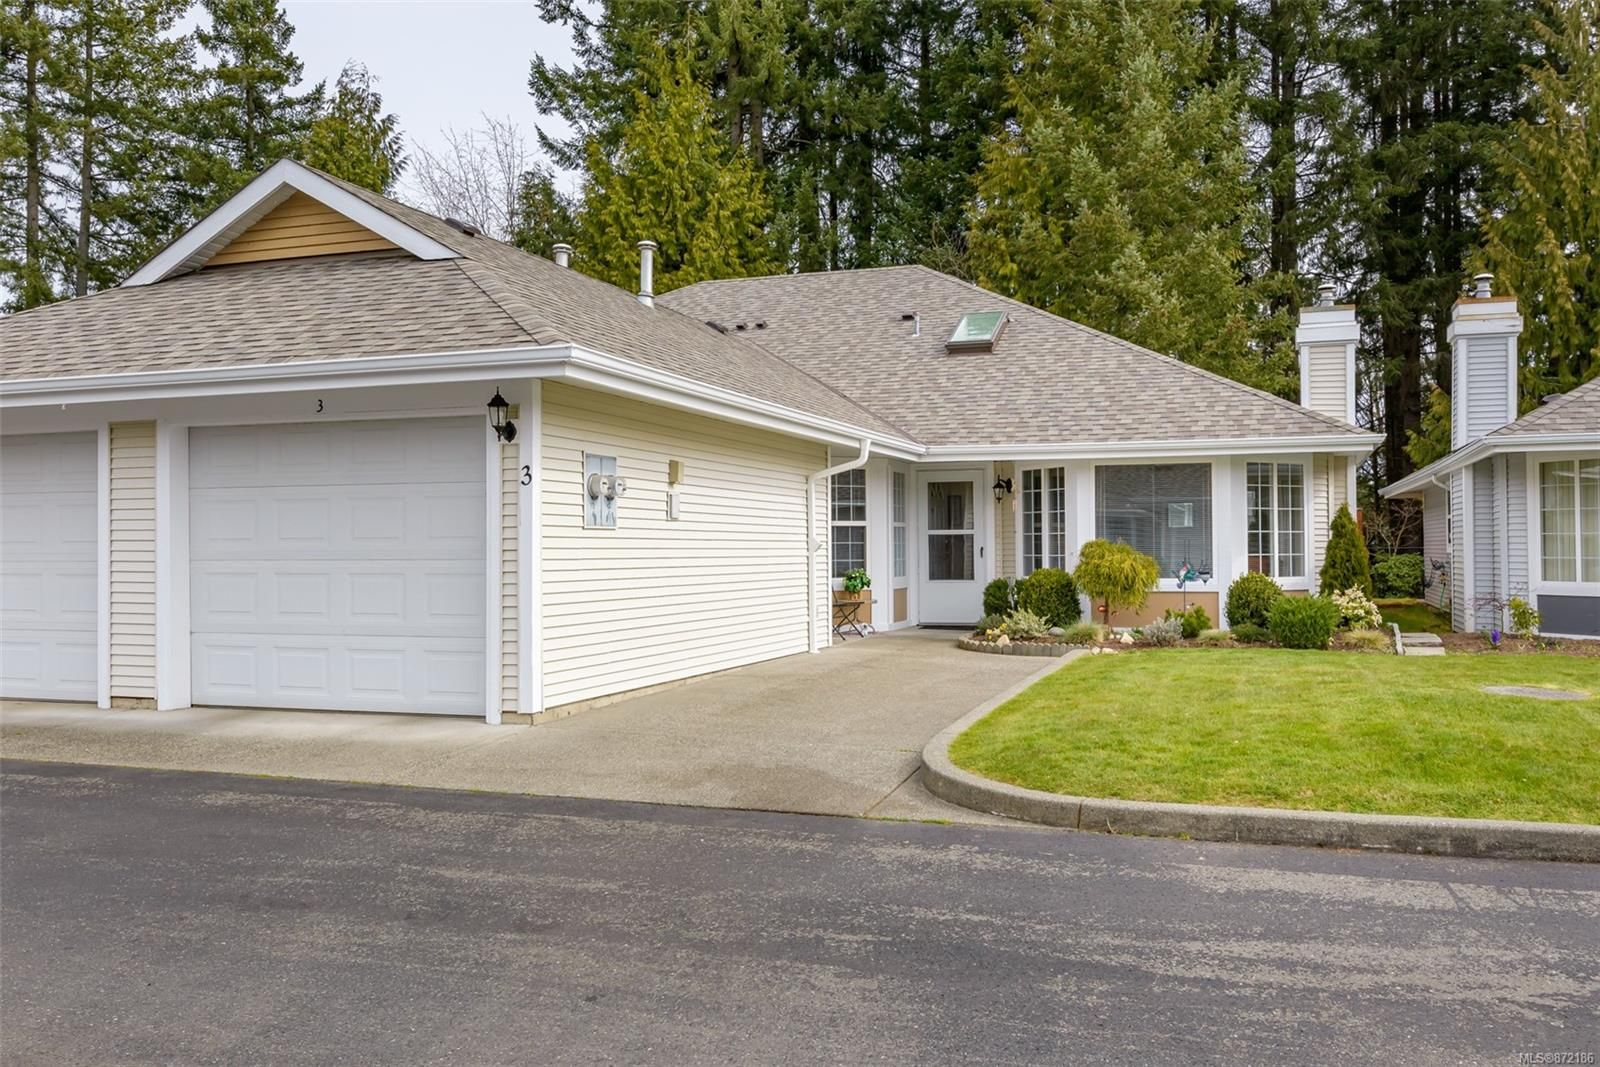 Main Photo: 3 2010 20th St in : CV Courtenay City Row/Townhouse for sale (Comox Valley)  : MLS®# 872186